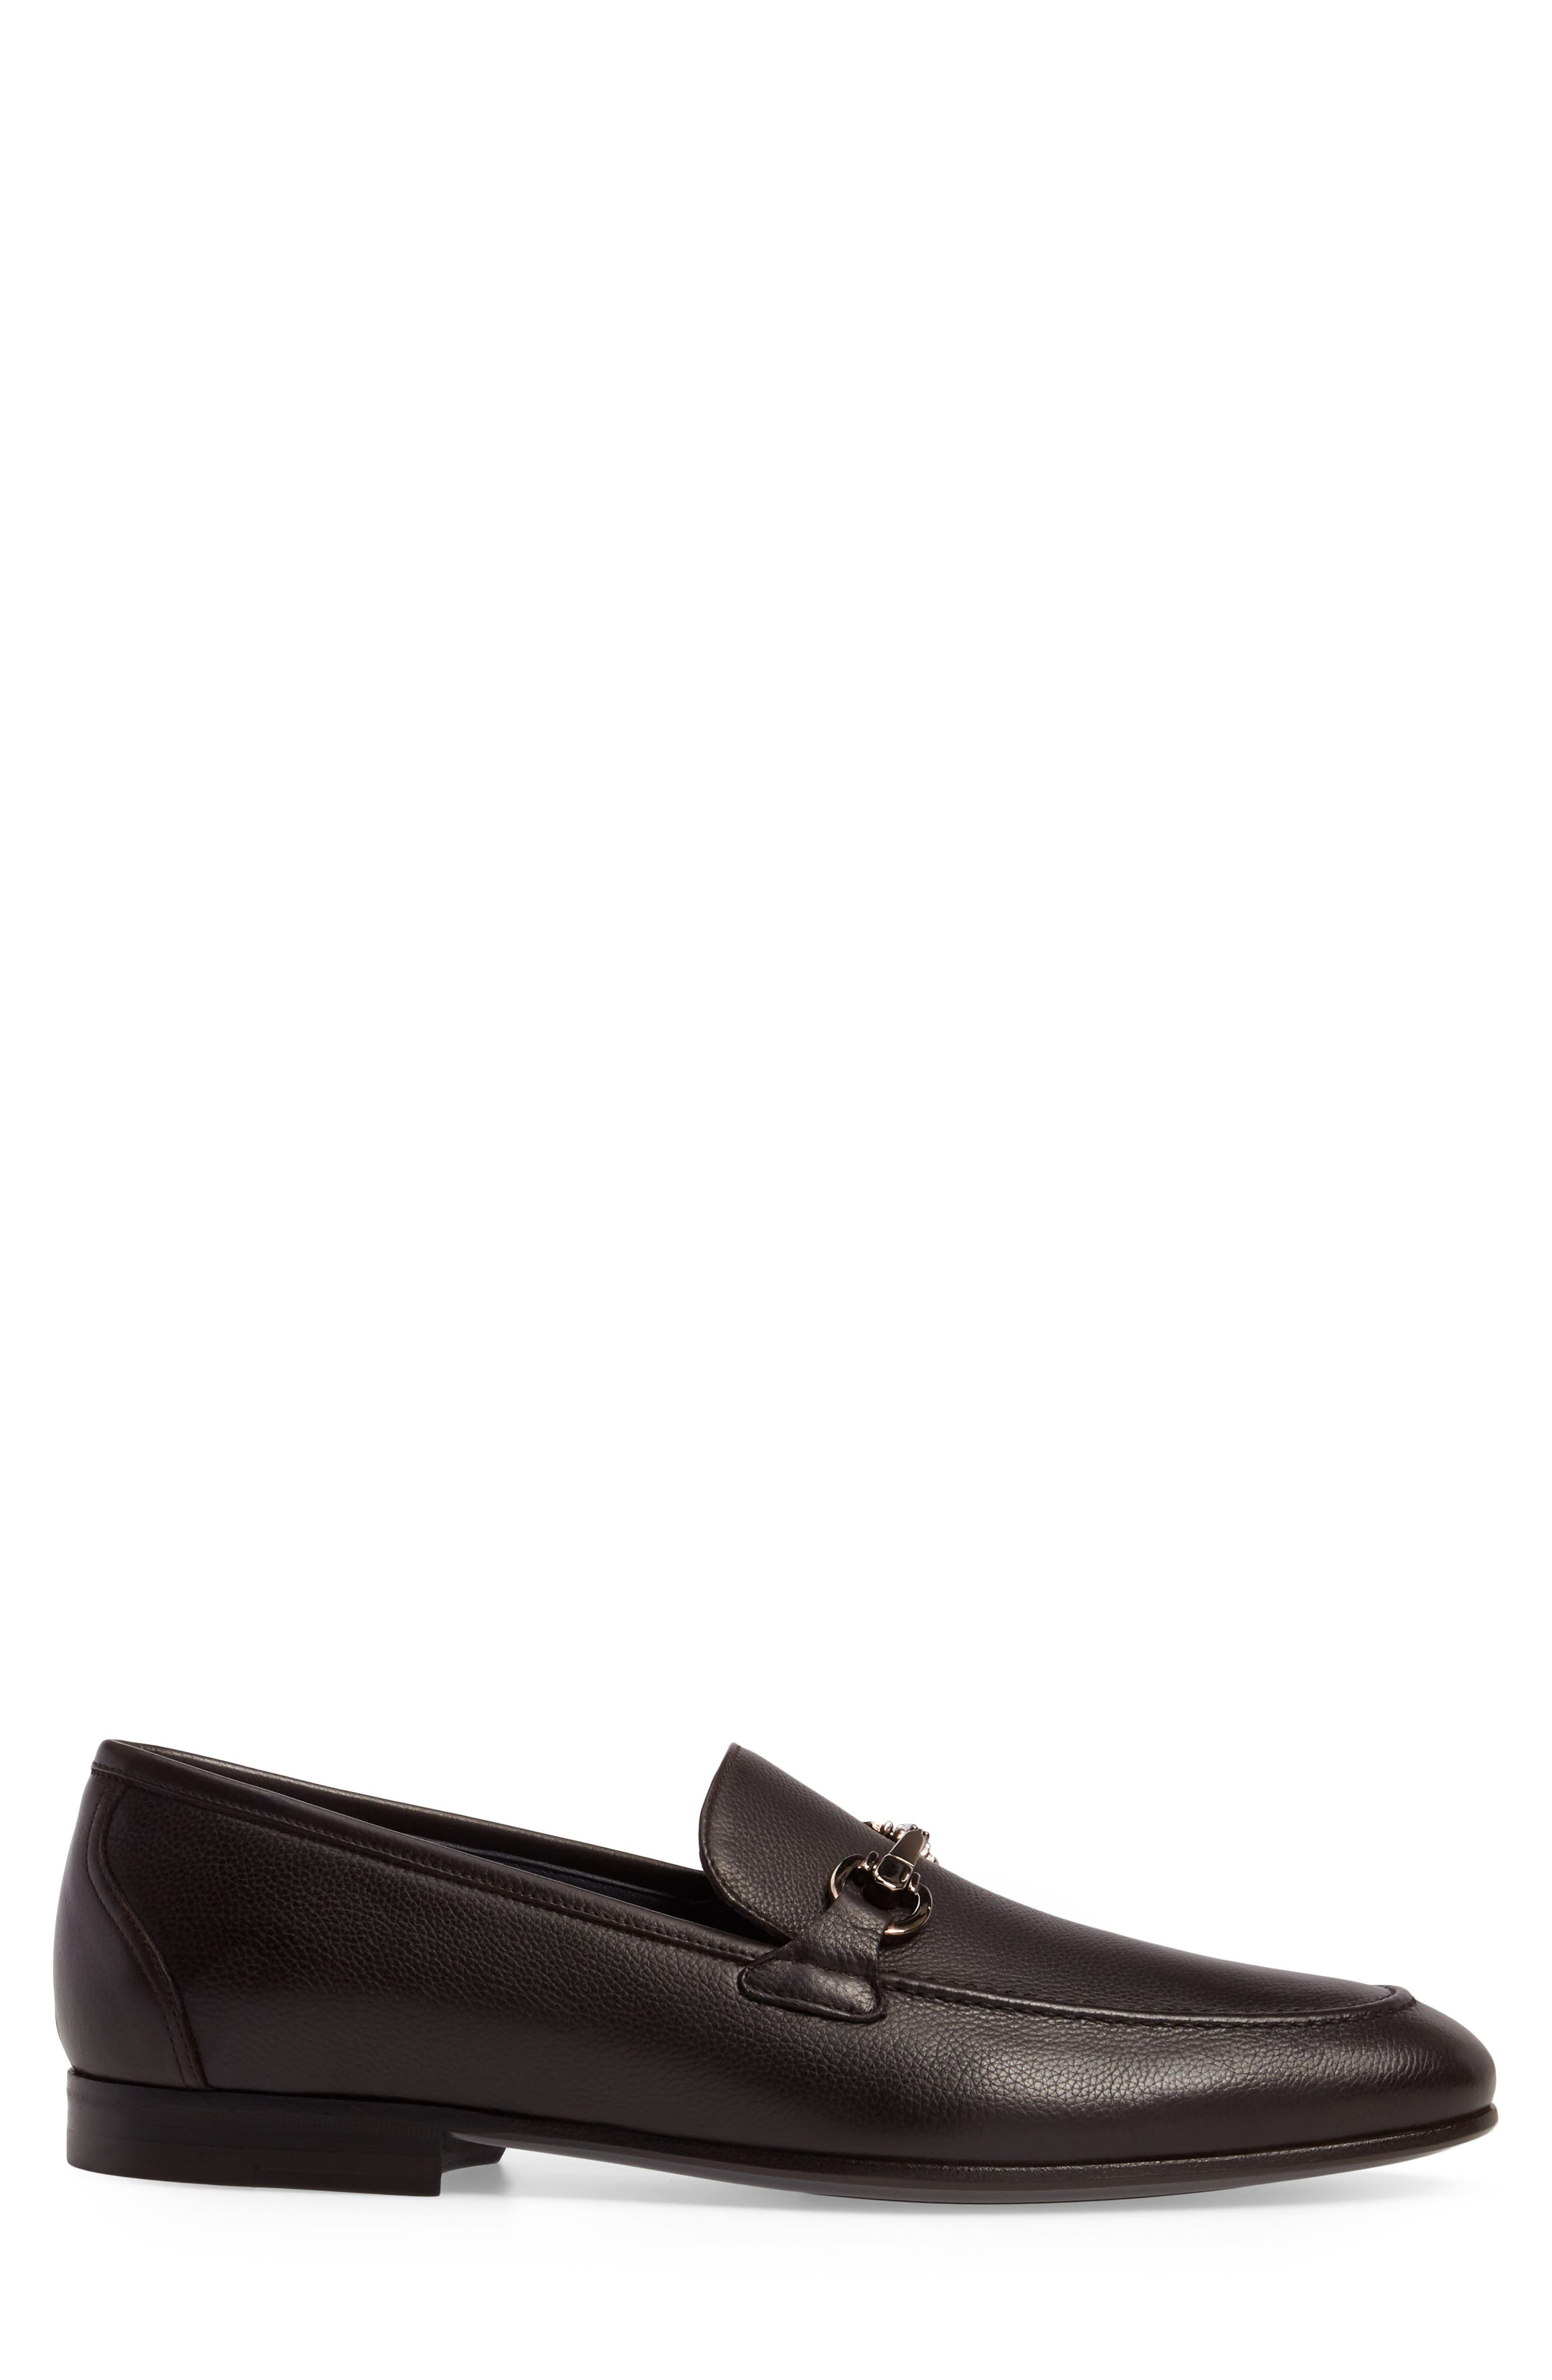 Brianza Bit Loafer,                             Alternate thumbnail 18, color,